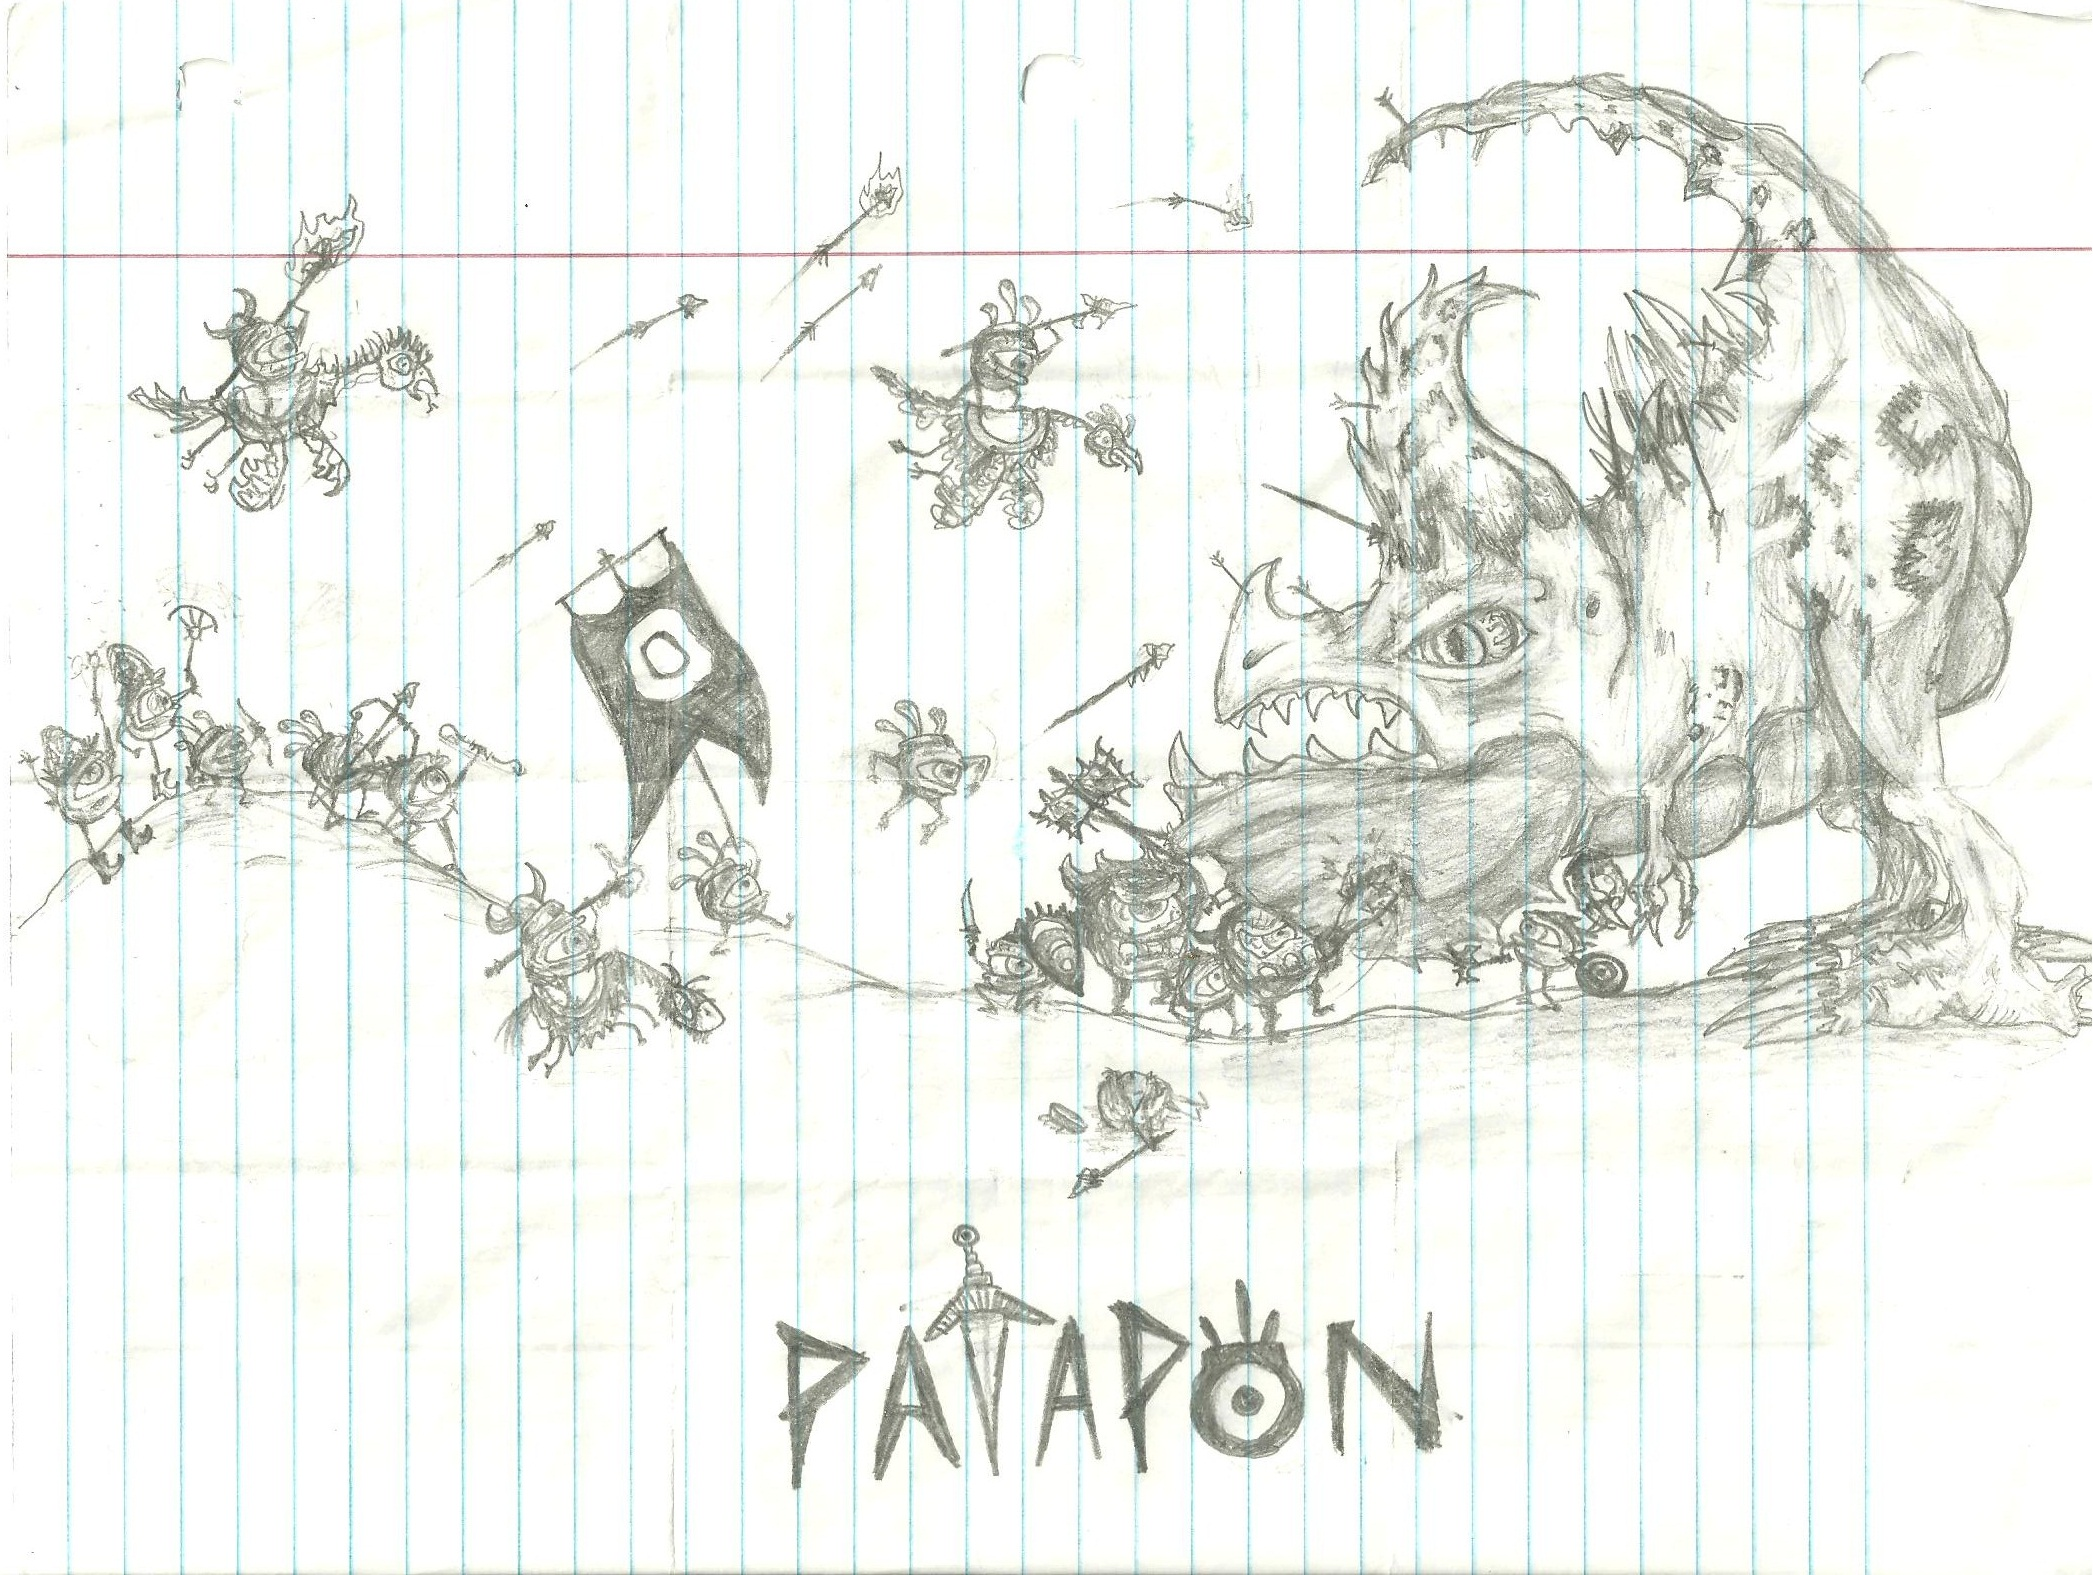 Real Patapons